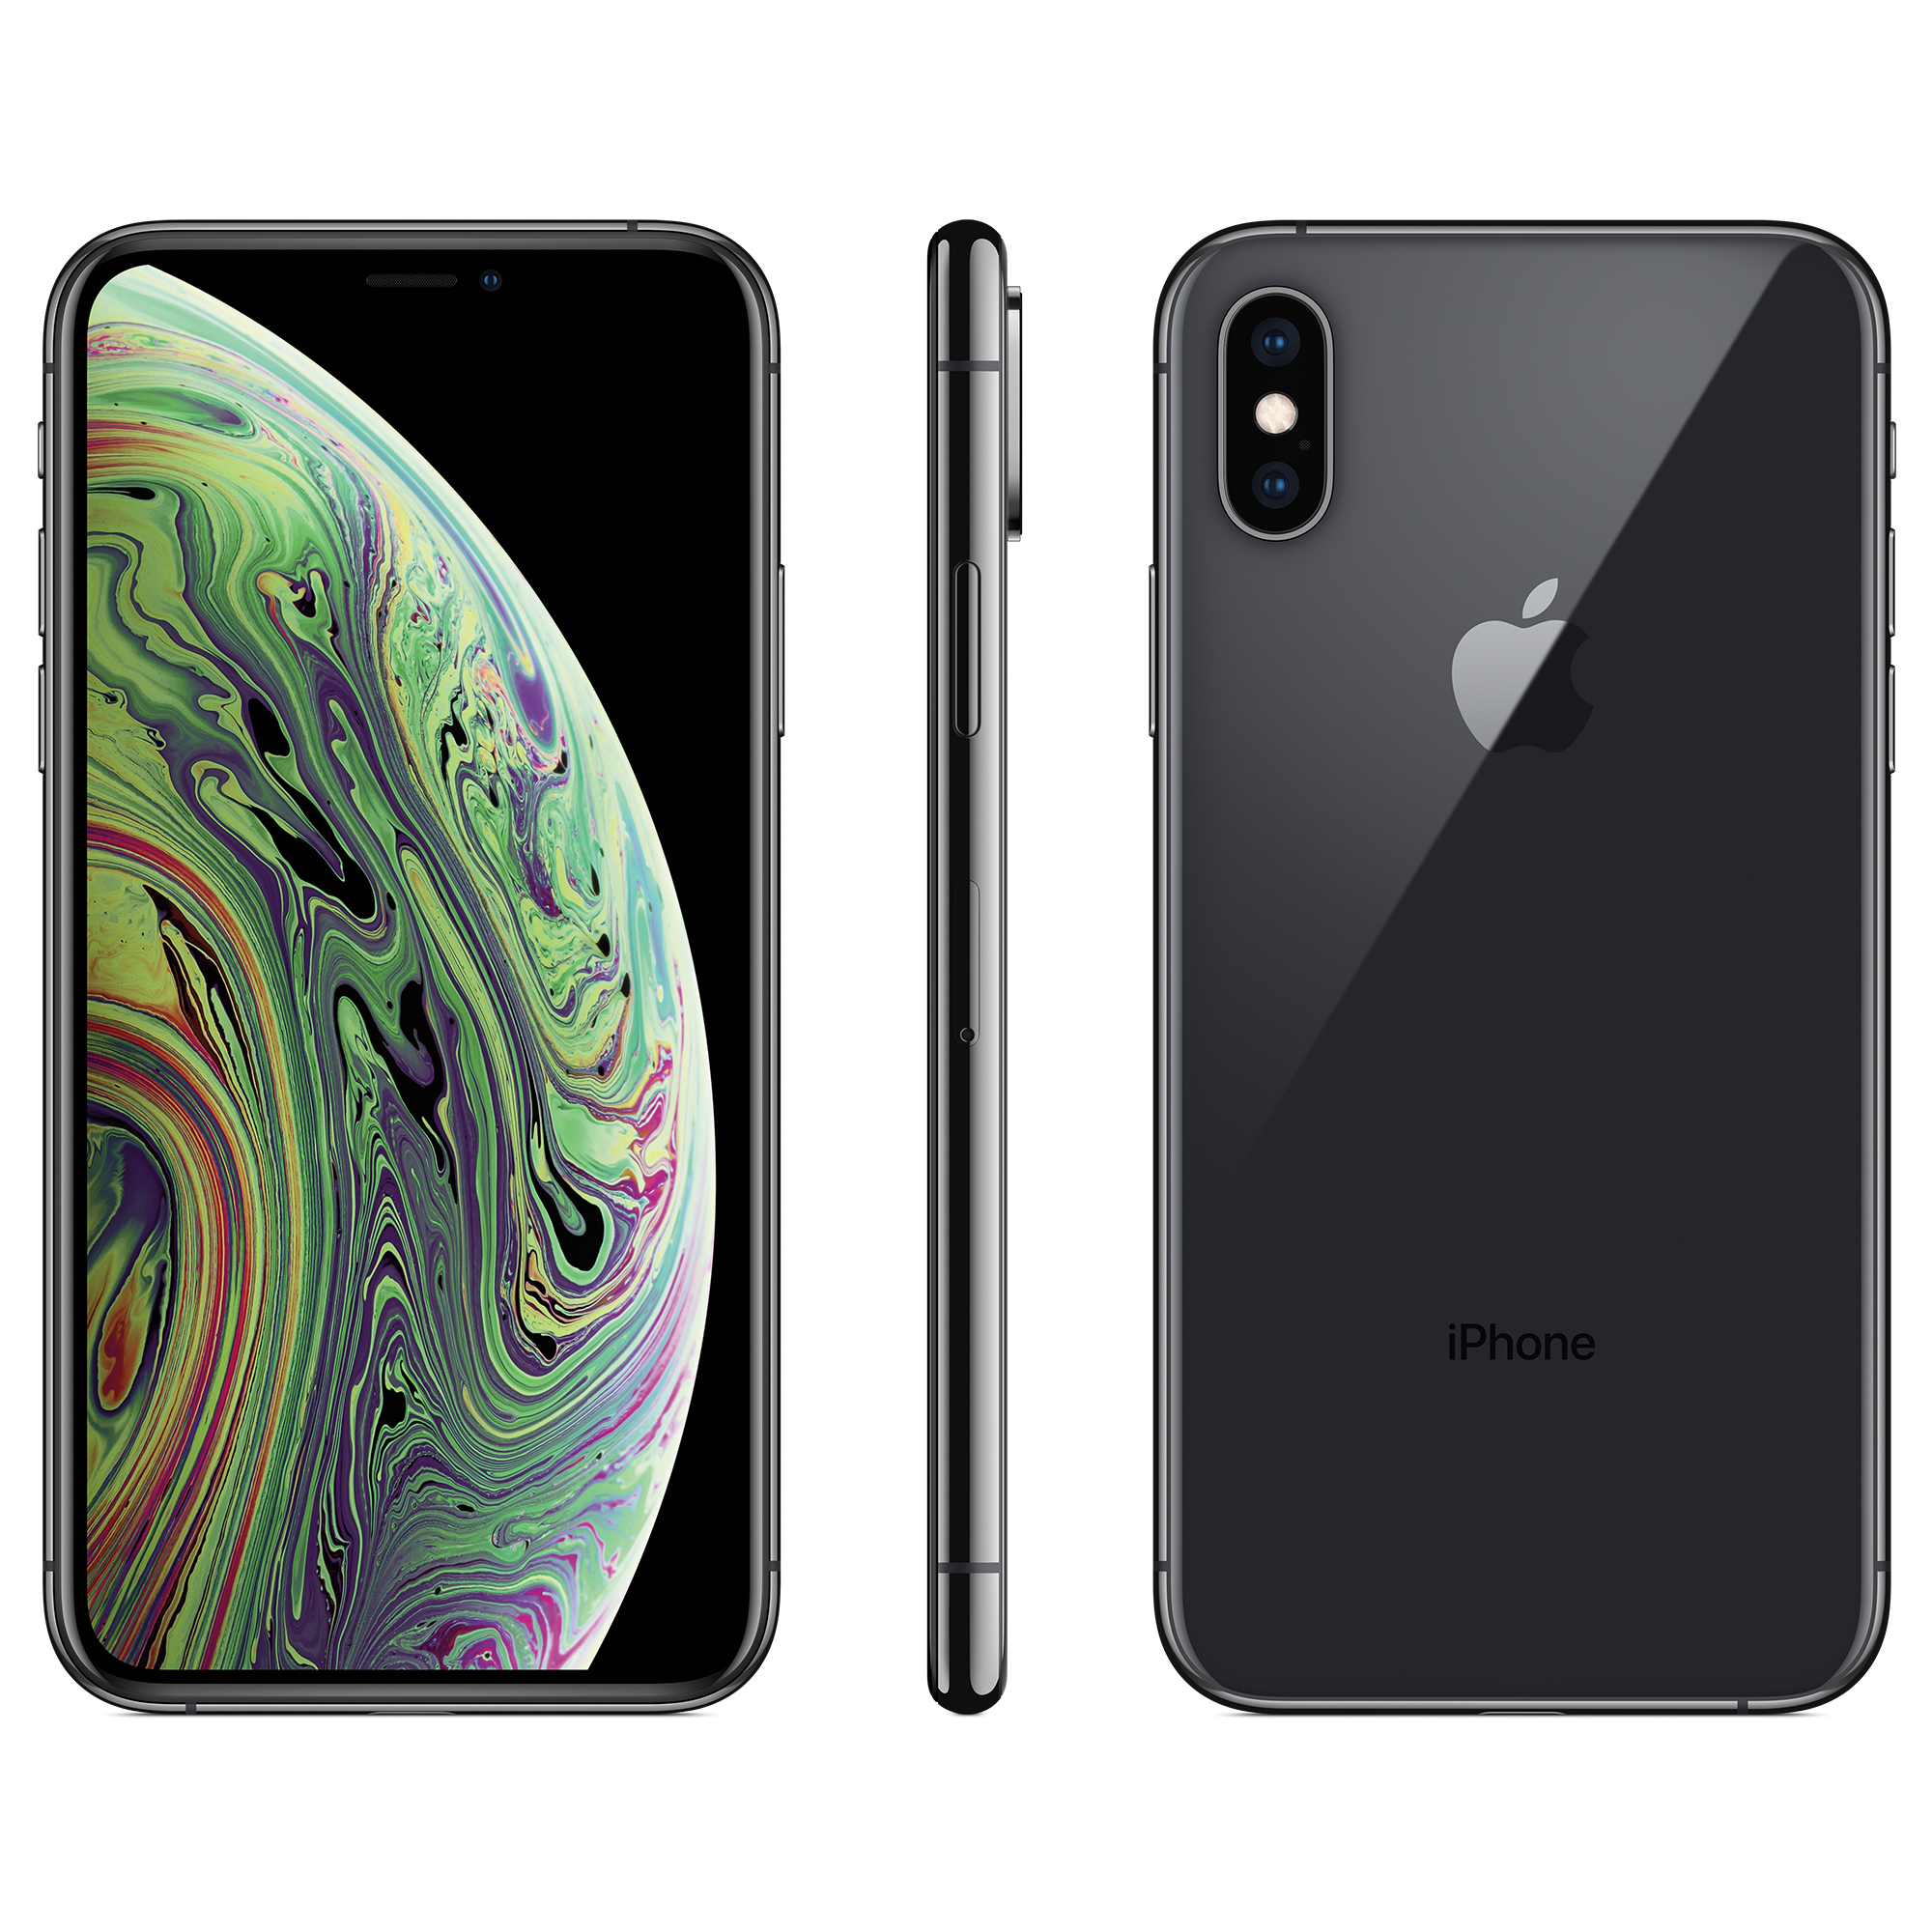 Original New iPhone Xs/Xs Max 4G LTE FaceID All Screen 5.8/6.5